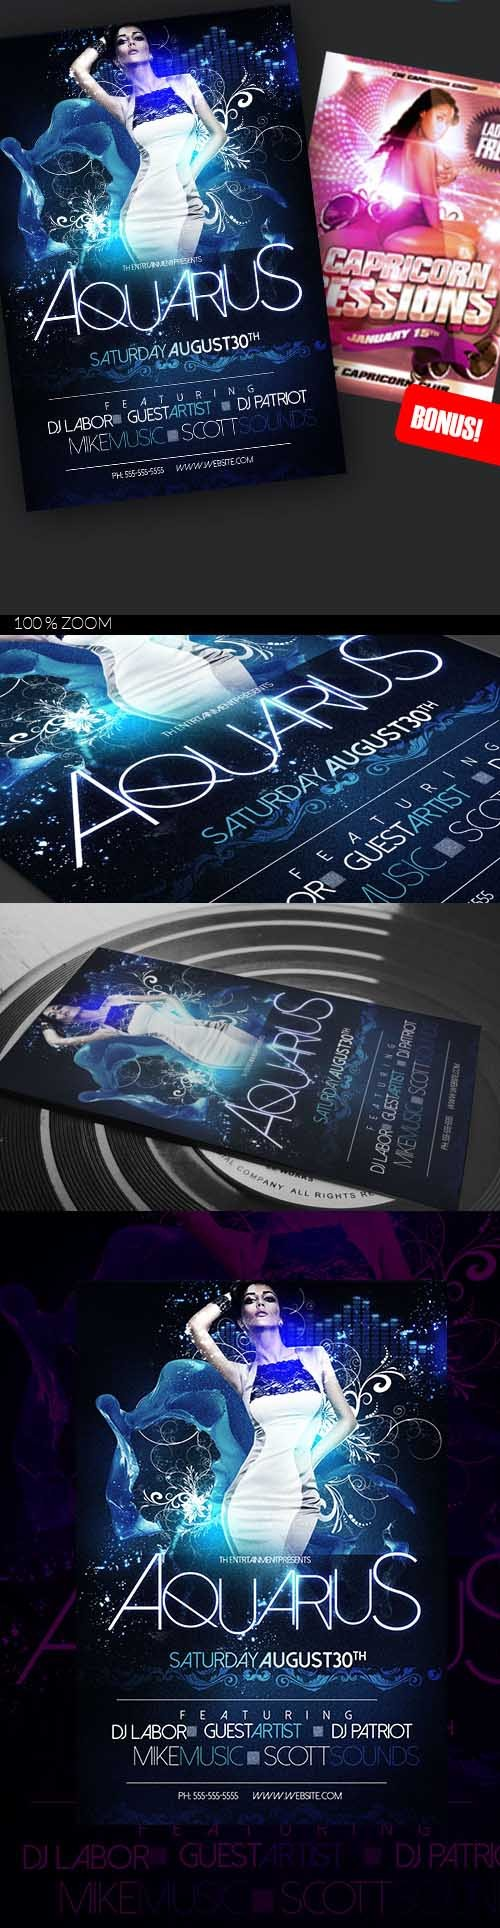 2 Flyer Template - Aquarius Party